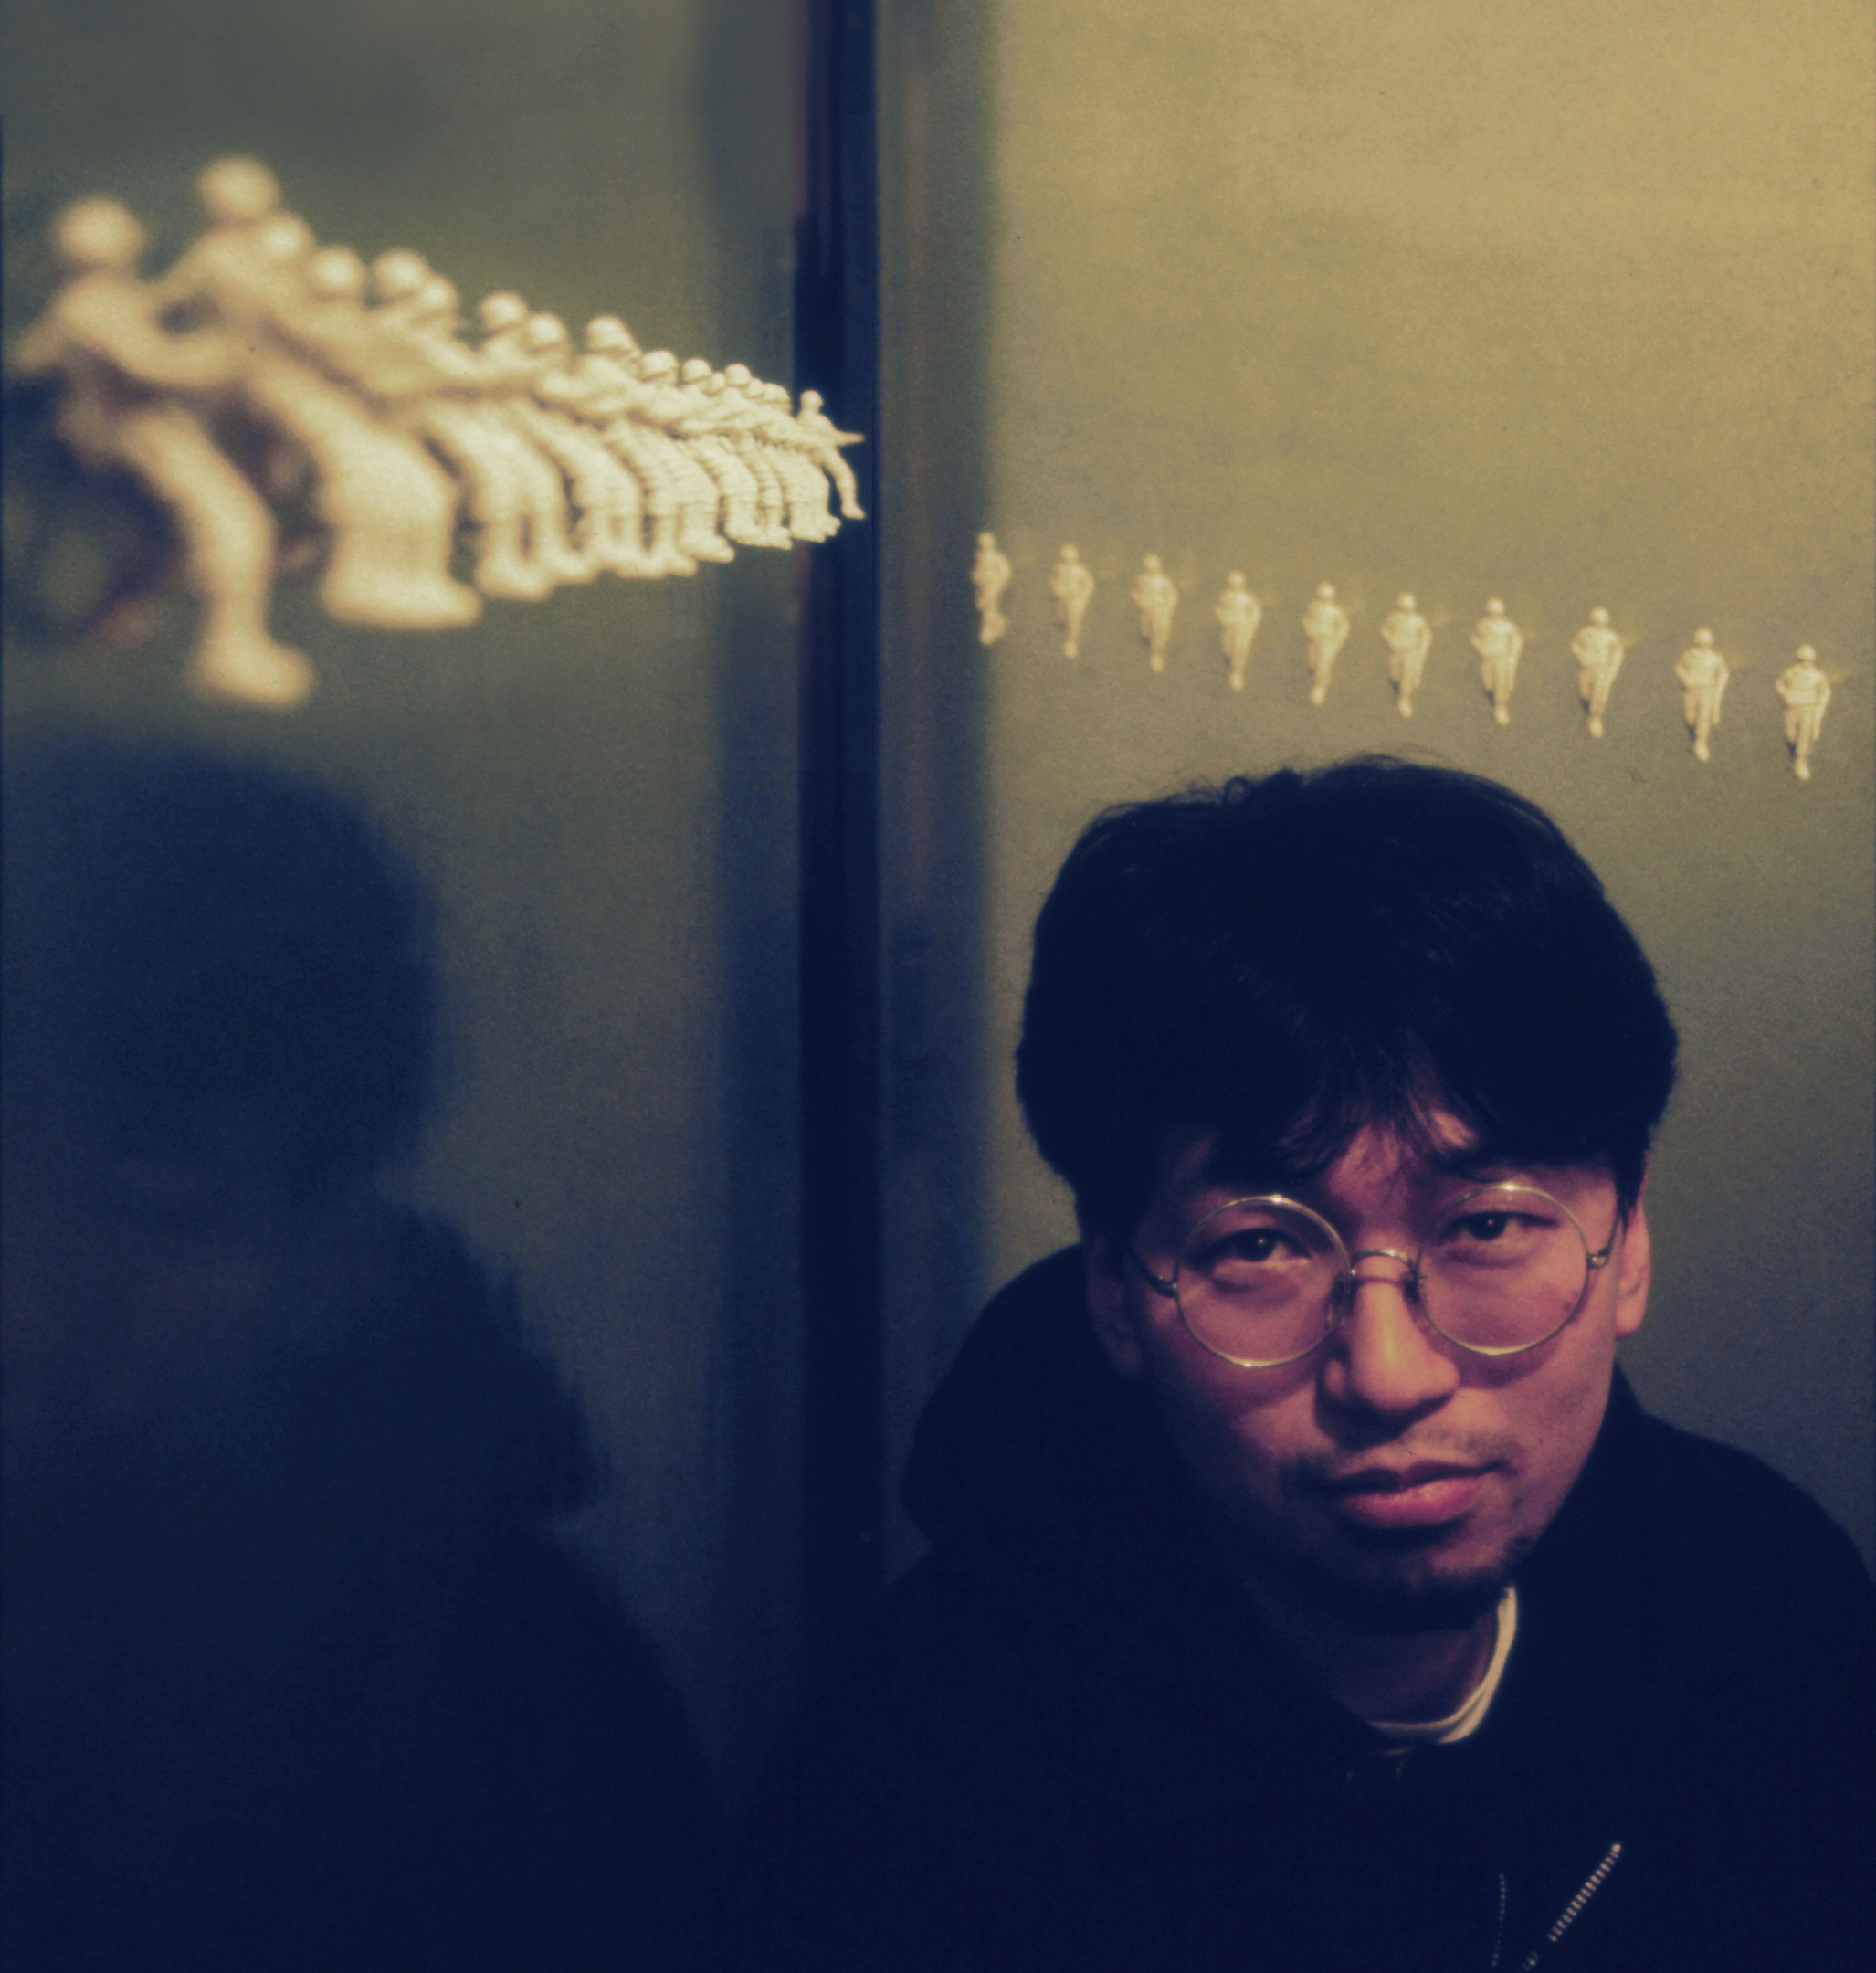 Takashi Murakami at Galerie Mars 1992_photo by Ithaka Darin Papp